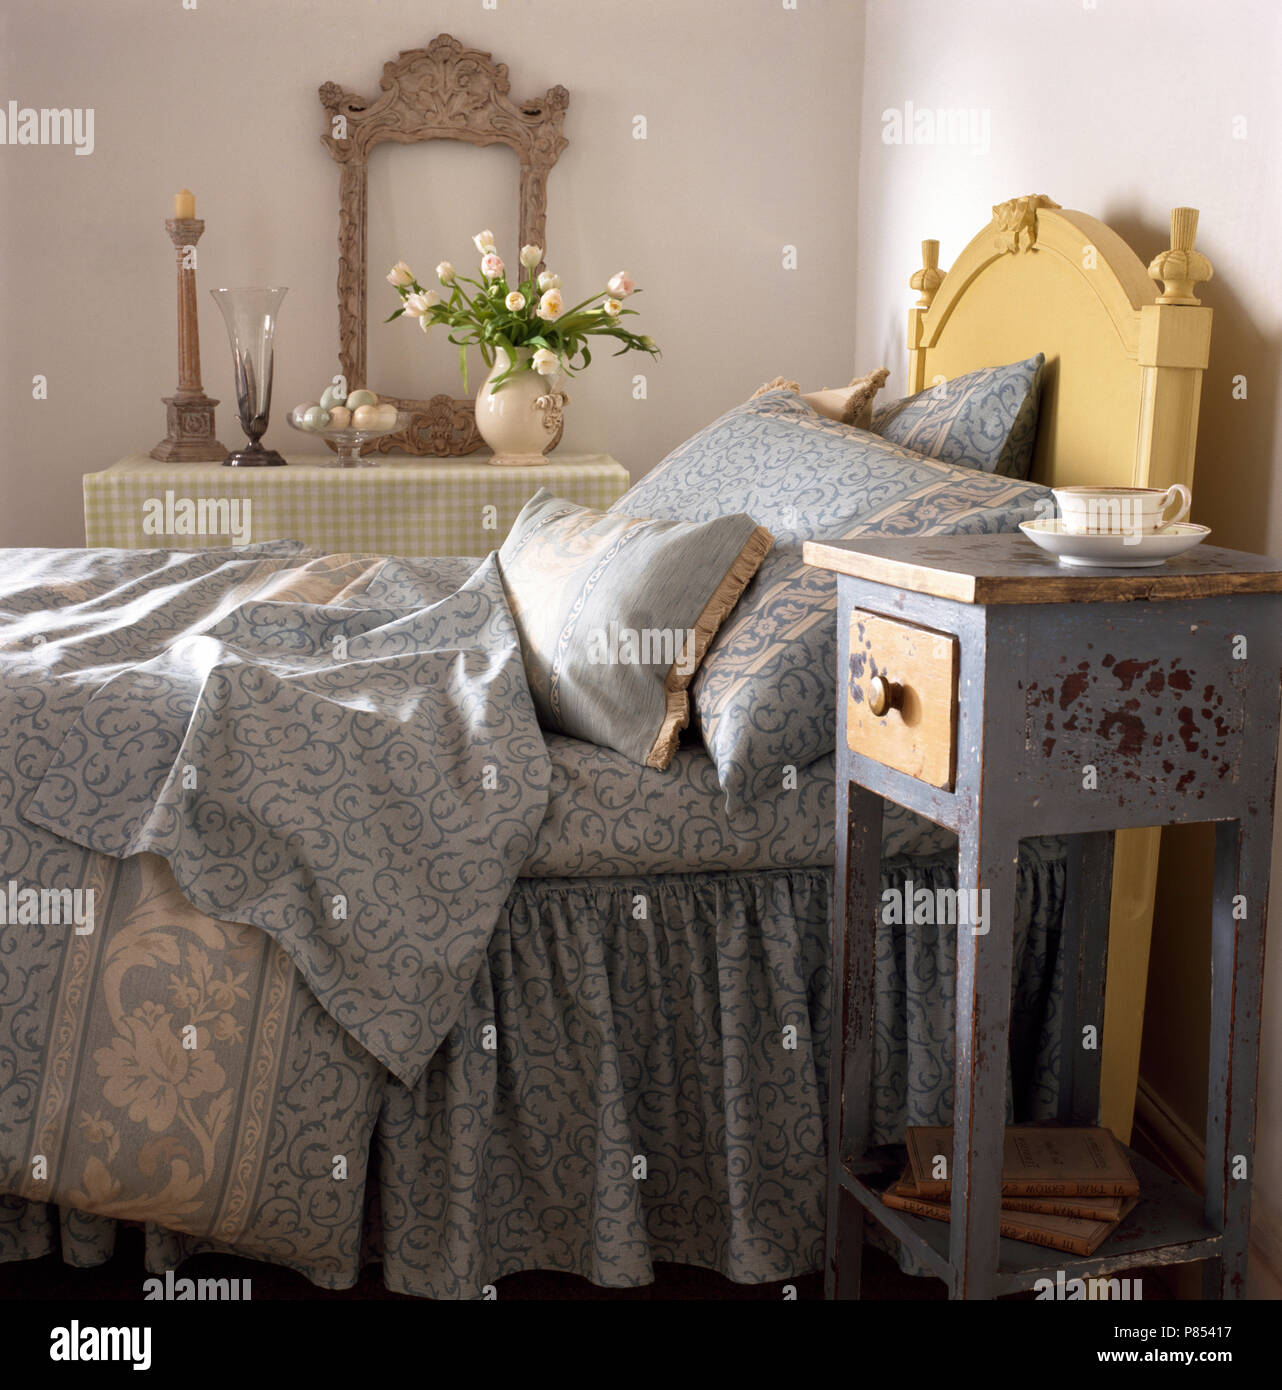 Small Ddistressed Painted Bedside Table Beside Bed With A Pale Grey Patterned Duvet And Pillows In An Economy Style Bedroom Stock Photo Alamy